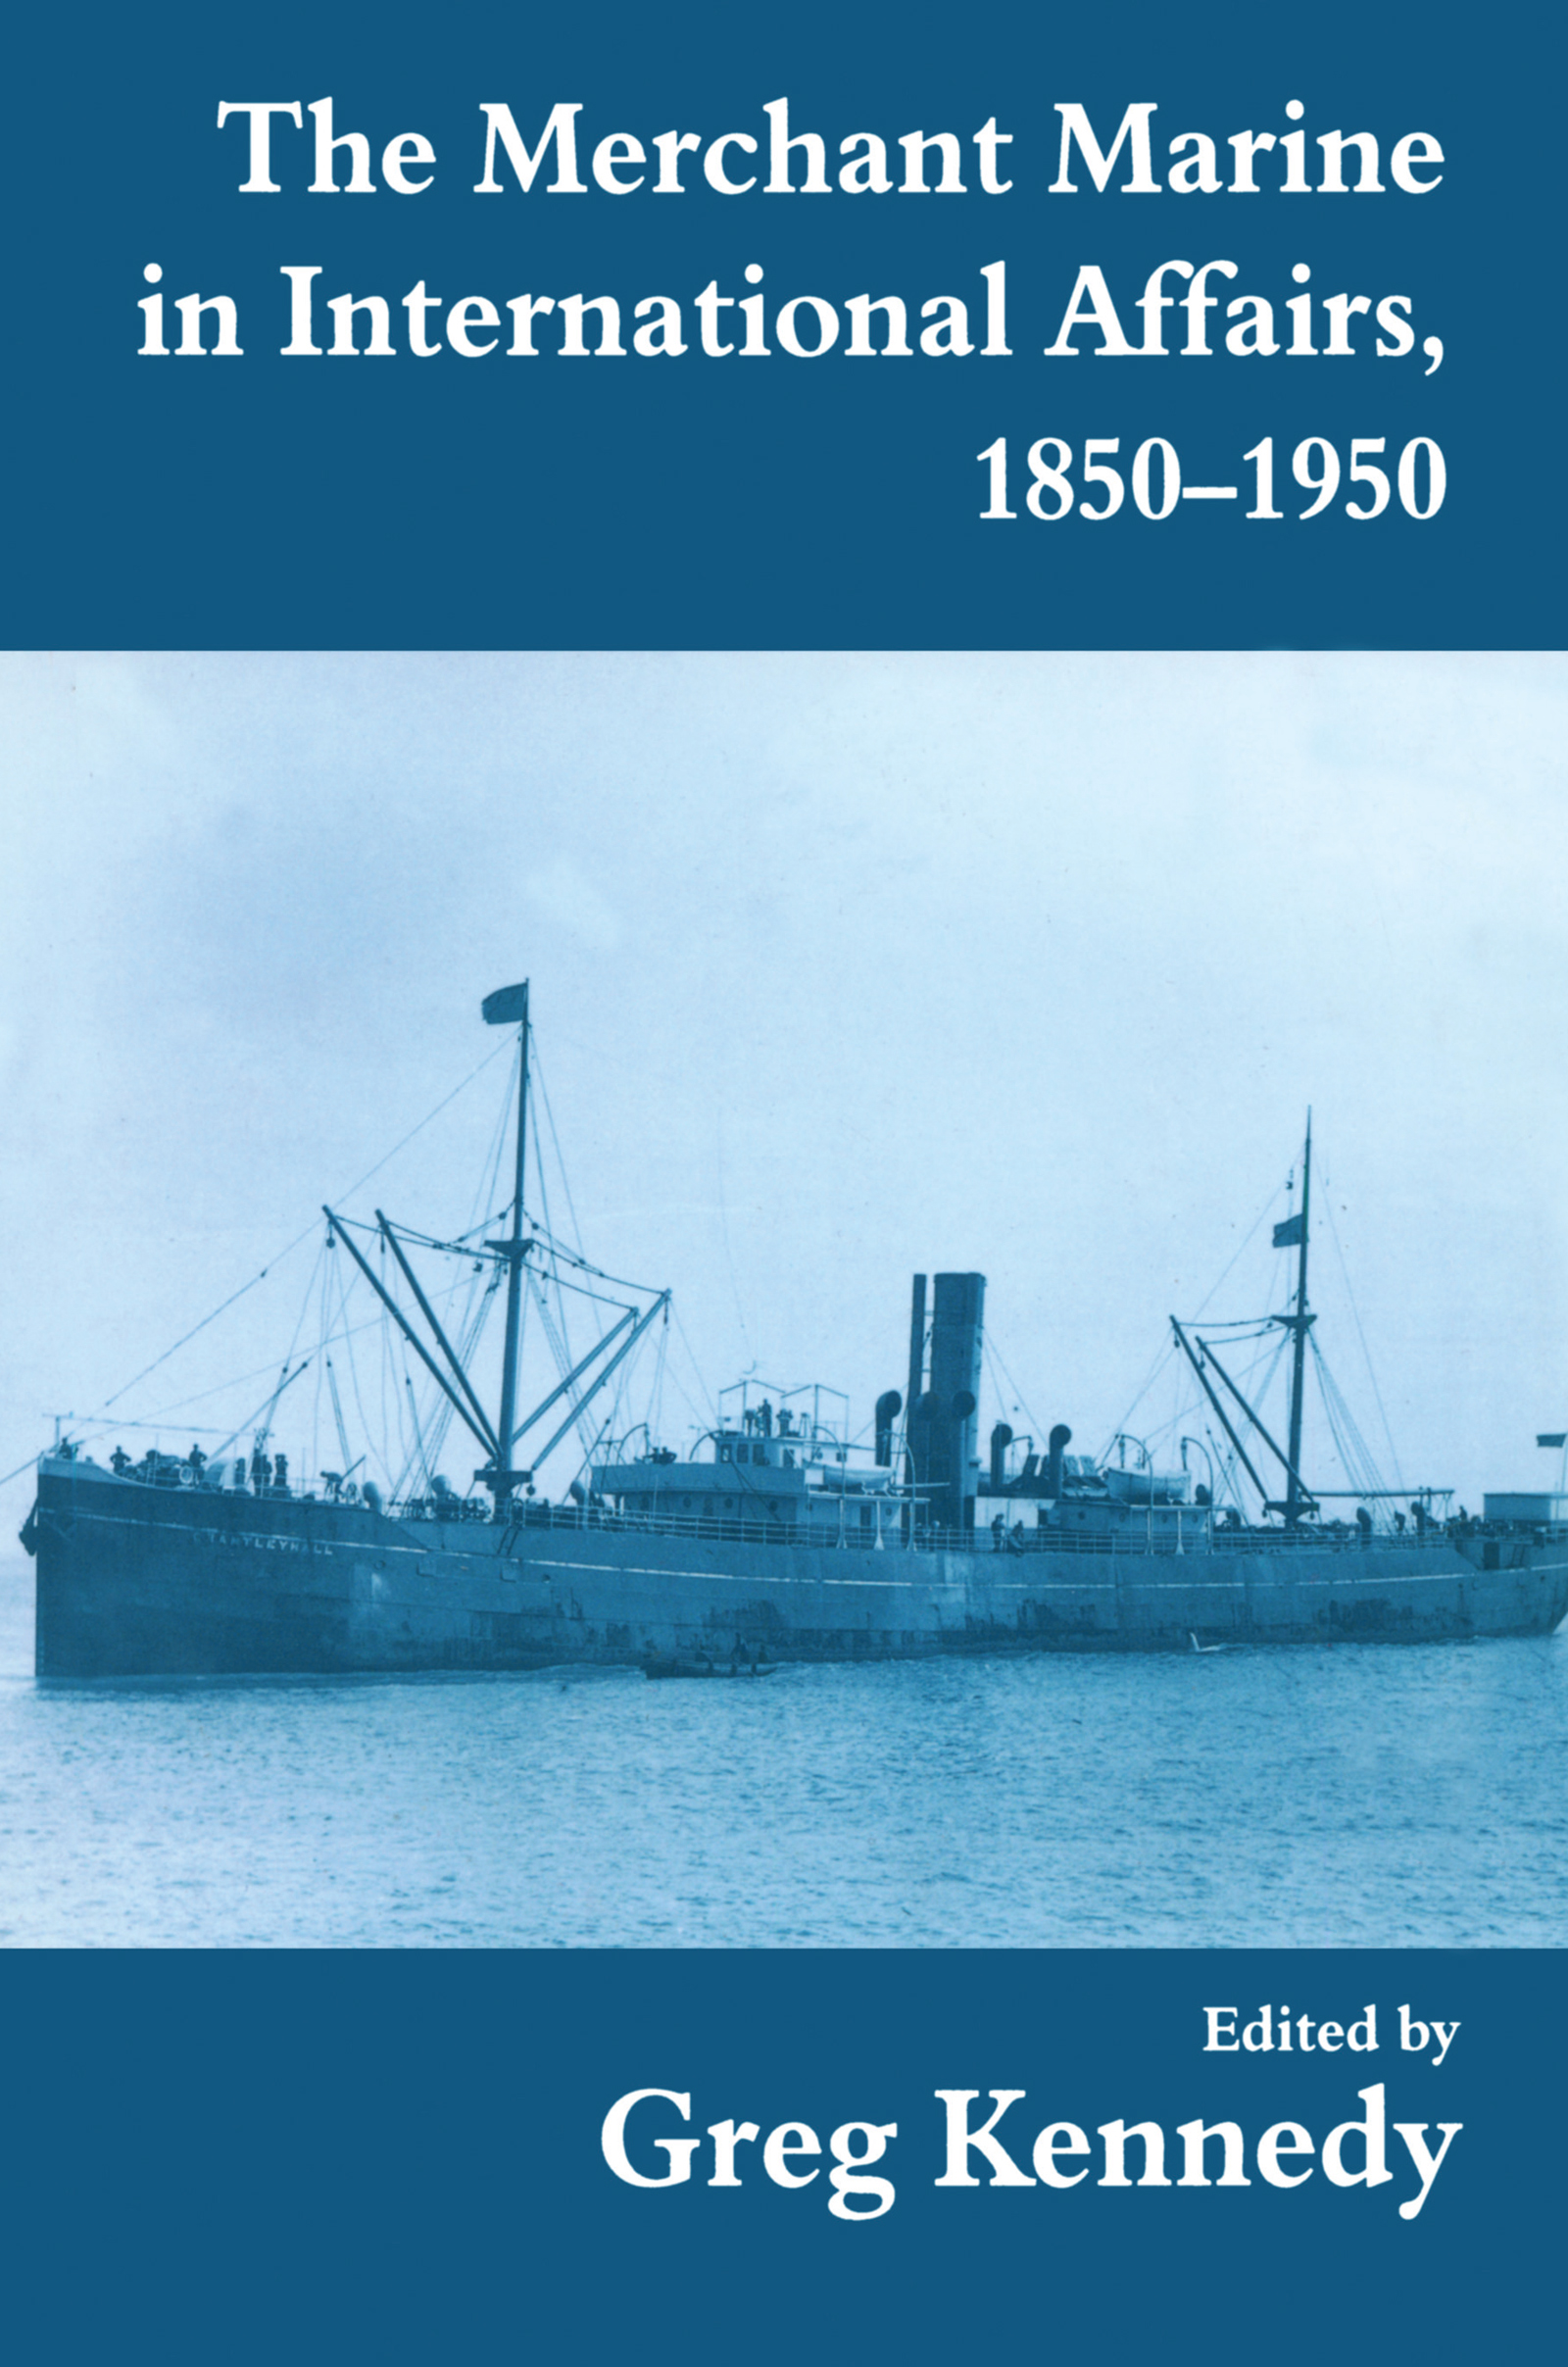 The Merchant Marine in International Affairs, 1850-1950 book cover